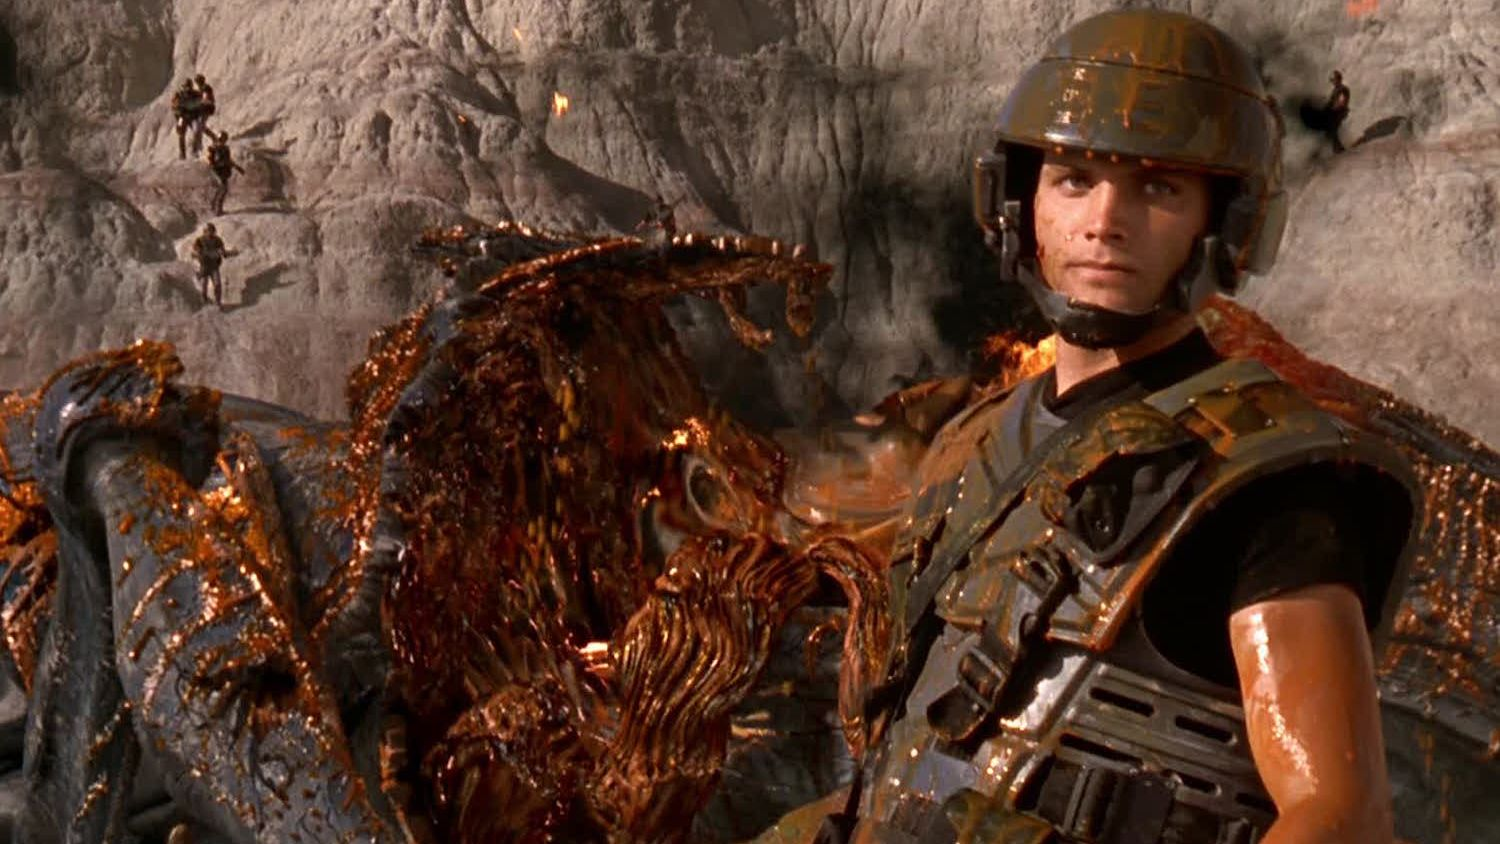 15 Fun Facts About Starship Troopers Mental Floss